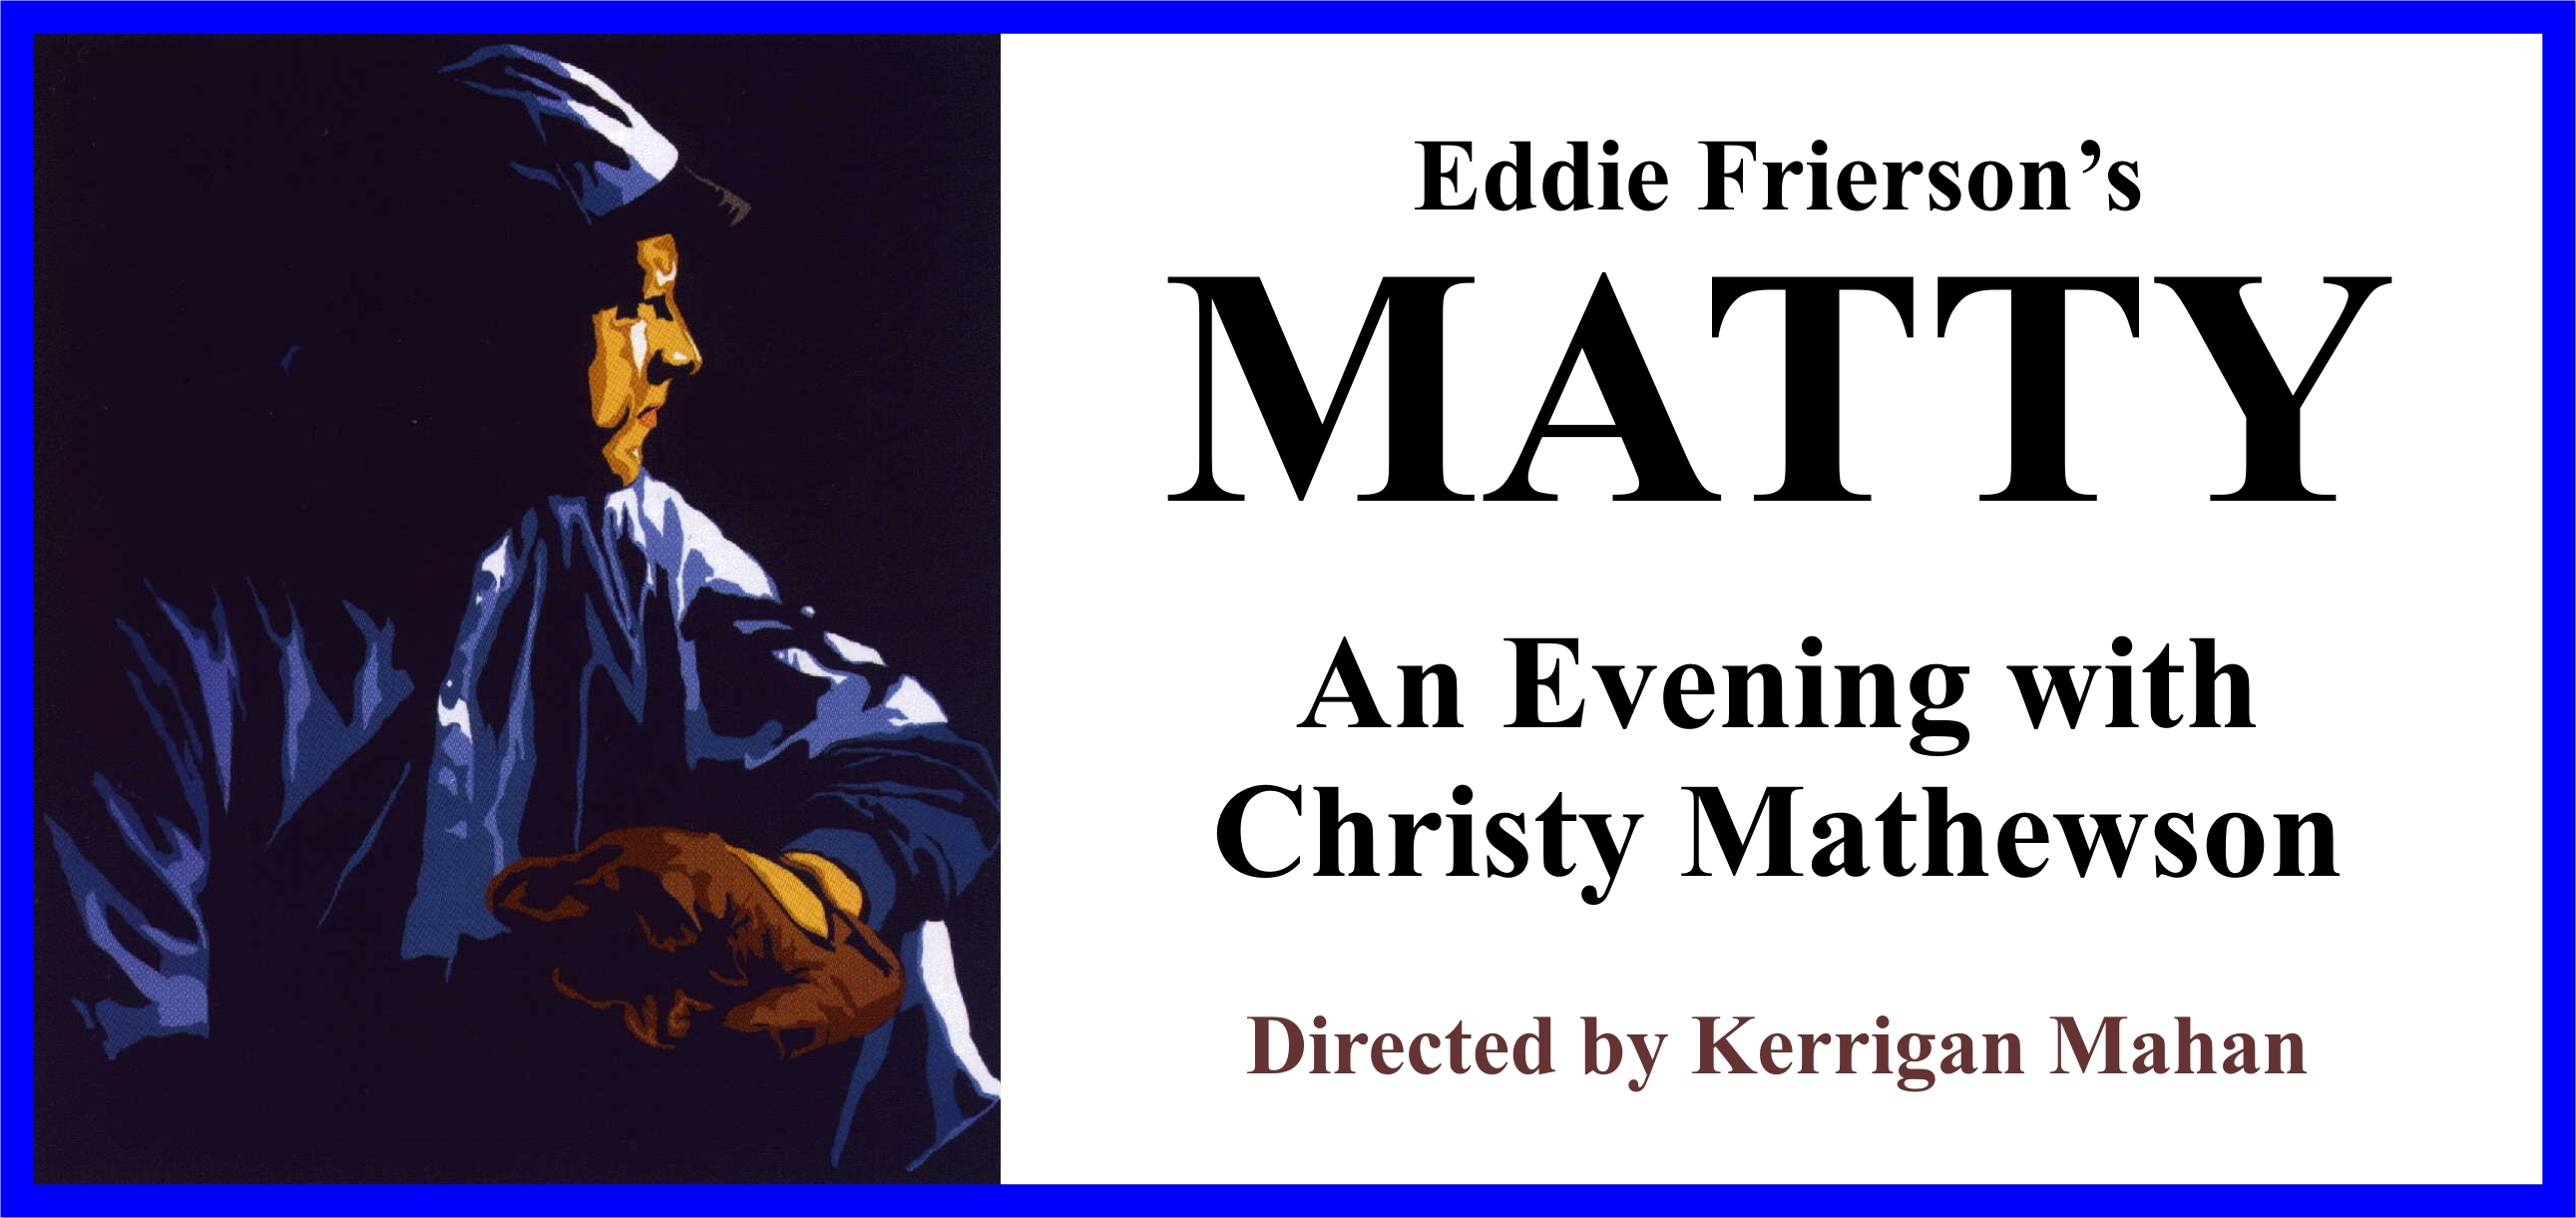 Tickets for Eddie Frierson's MATTY - An Evening With Christy Matthewson in Santa Monica from ShowClix